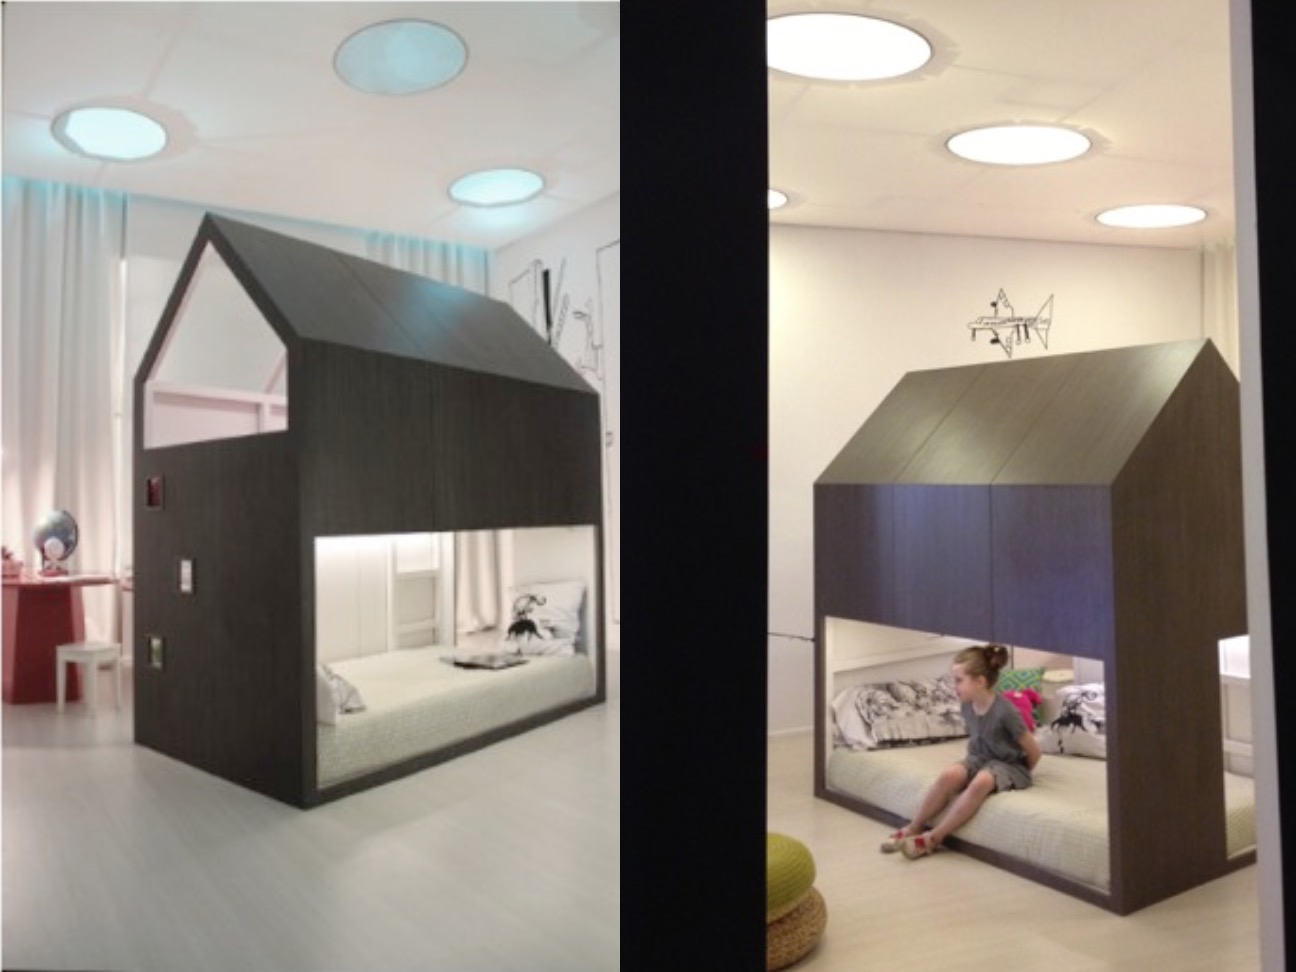 Tiny Box Room Ikea Stuva Loft Bed Making The Most Of: 31 IKEA Bunk Bed Hacks That Will Make Your Kids Want To